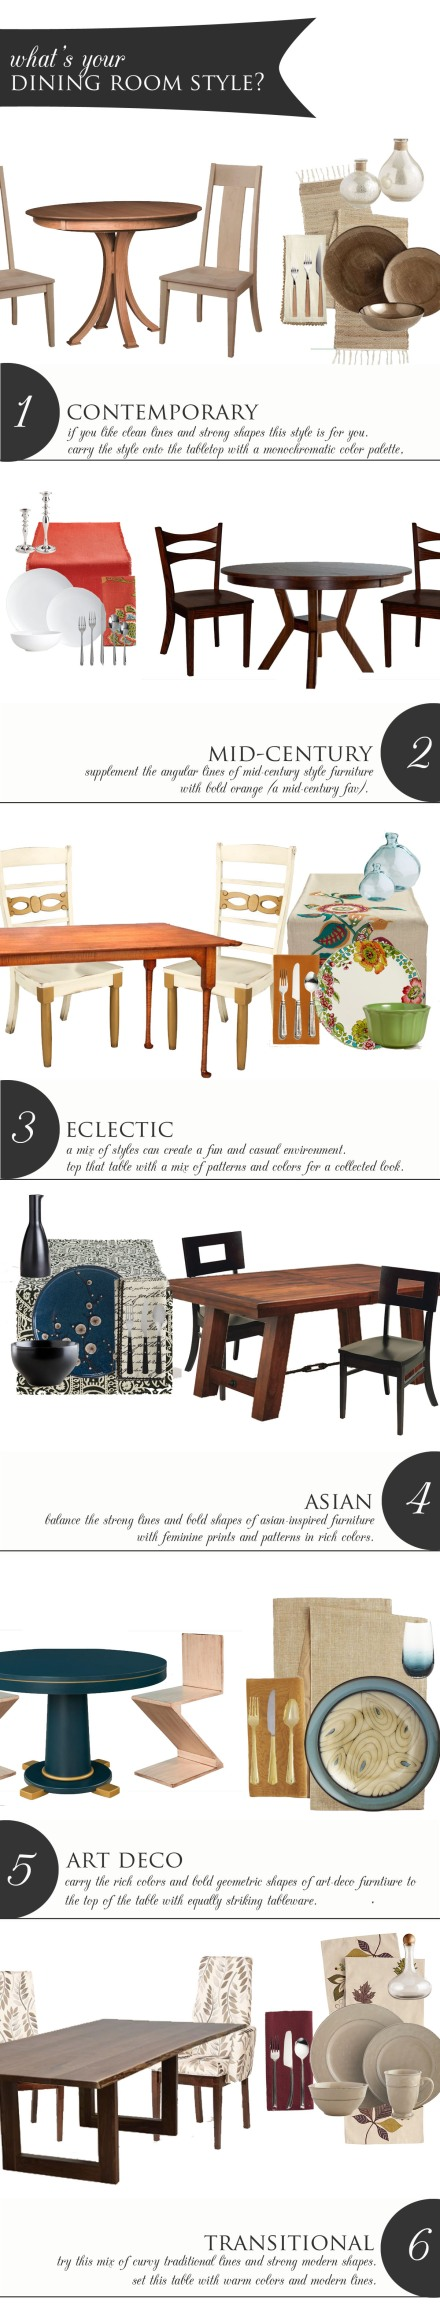 dutchcraftersdiningstyle copy